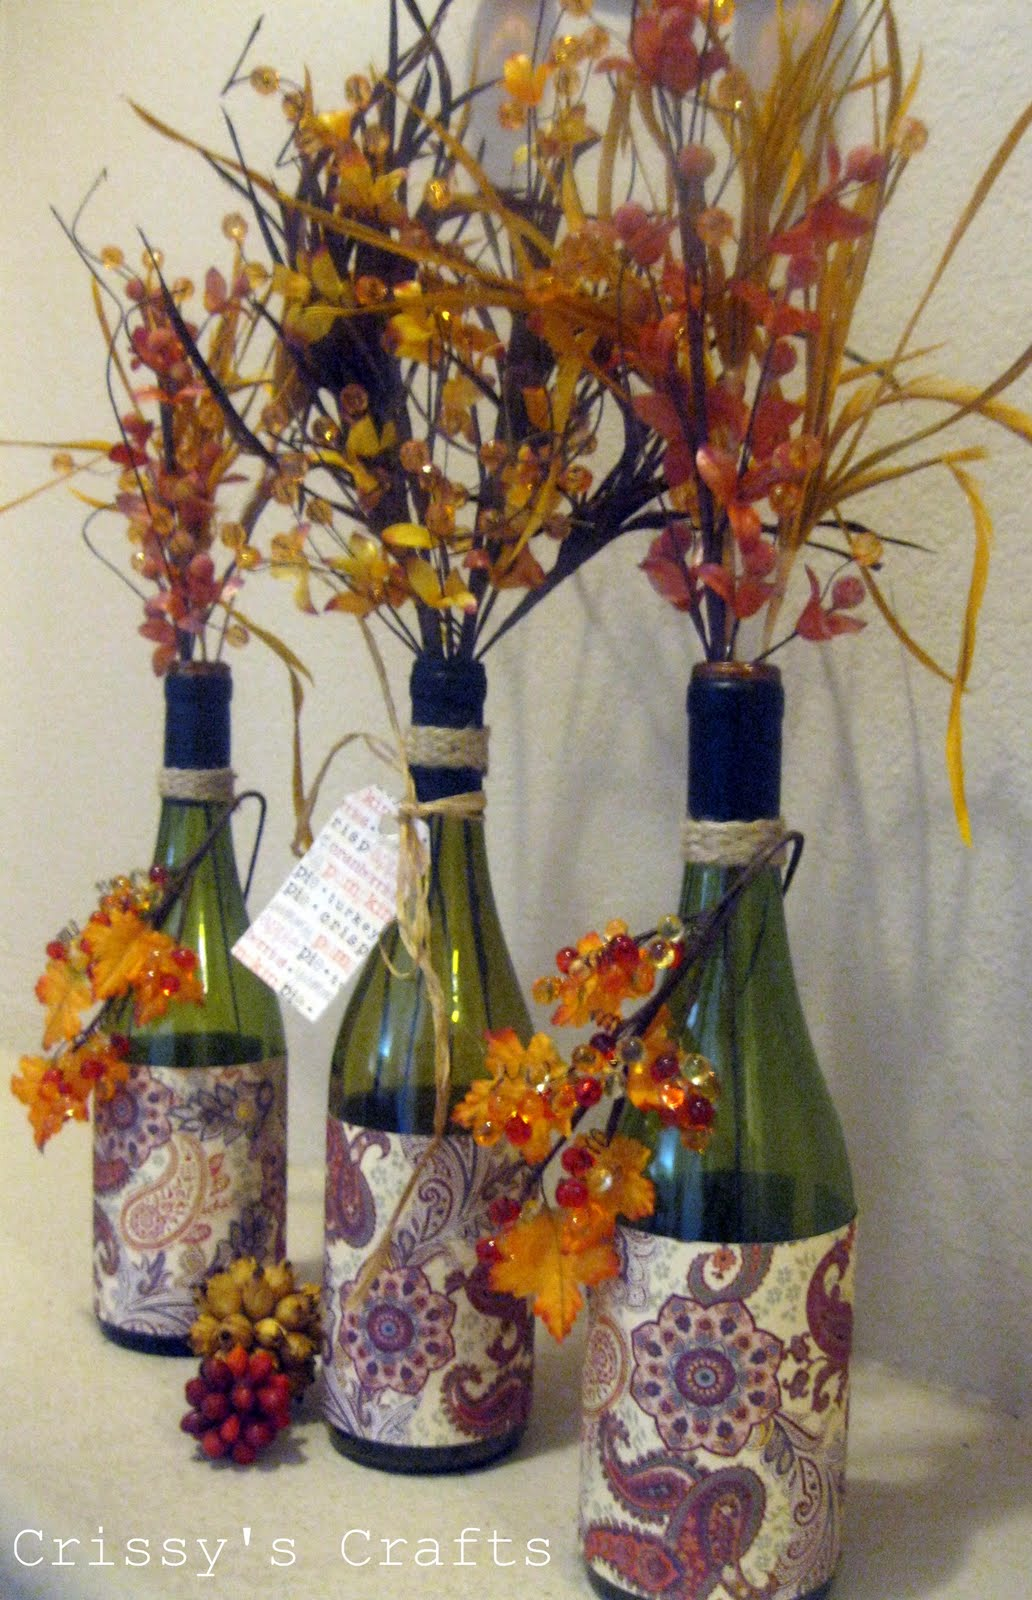 Crissy 39 s crafts up cycle fall vases made from glass bottles for Fall ideas crafts